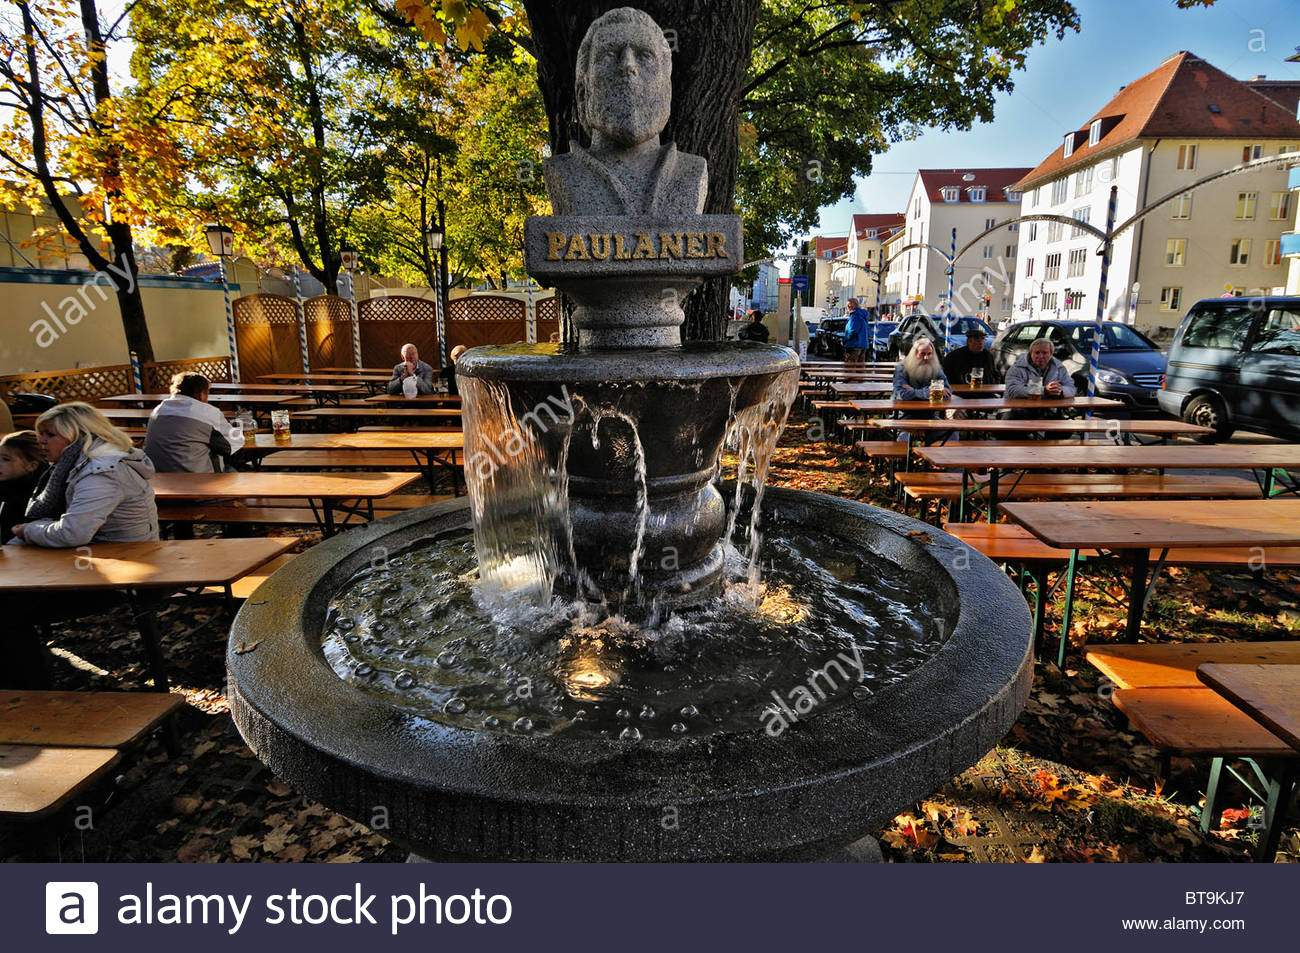 paulaner brunnen in einem biergarten neben der auer dult messe munich bavaria germany europe bt9kj7